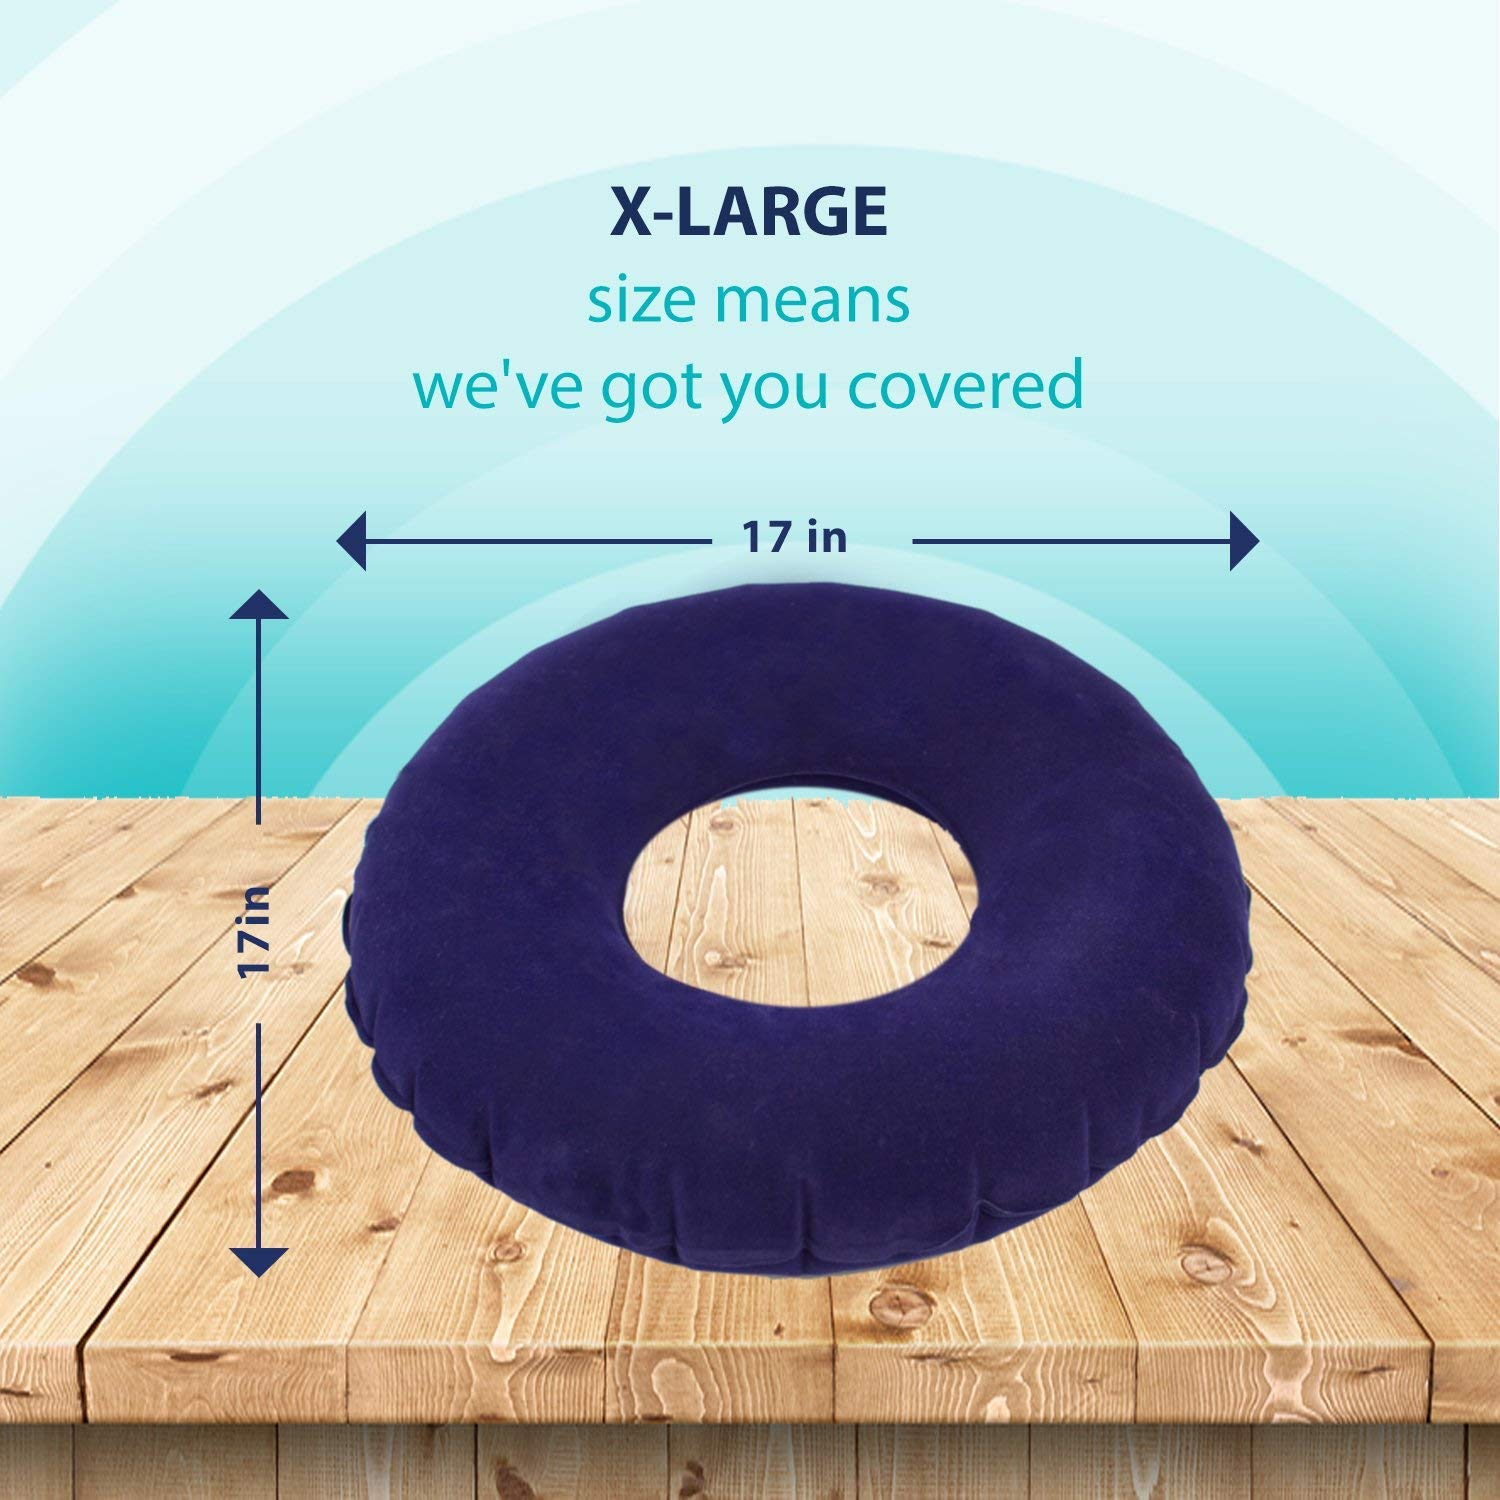 MedAttic 2 X Superior Comfort Donut Cushion Seat, 15'' Orthopedic Medical Inflatable Ring Pillow for Bed Pressure Sores, Tailbone Pain, Hemorrhoids, Coccyx, Child Birth, Prostatitis